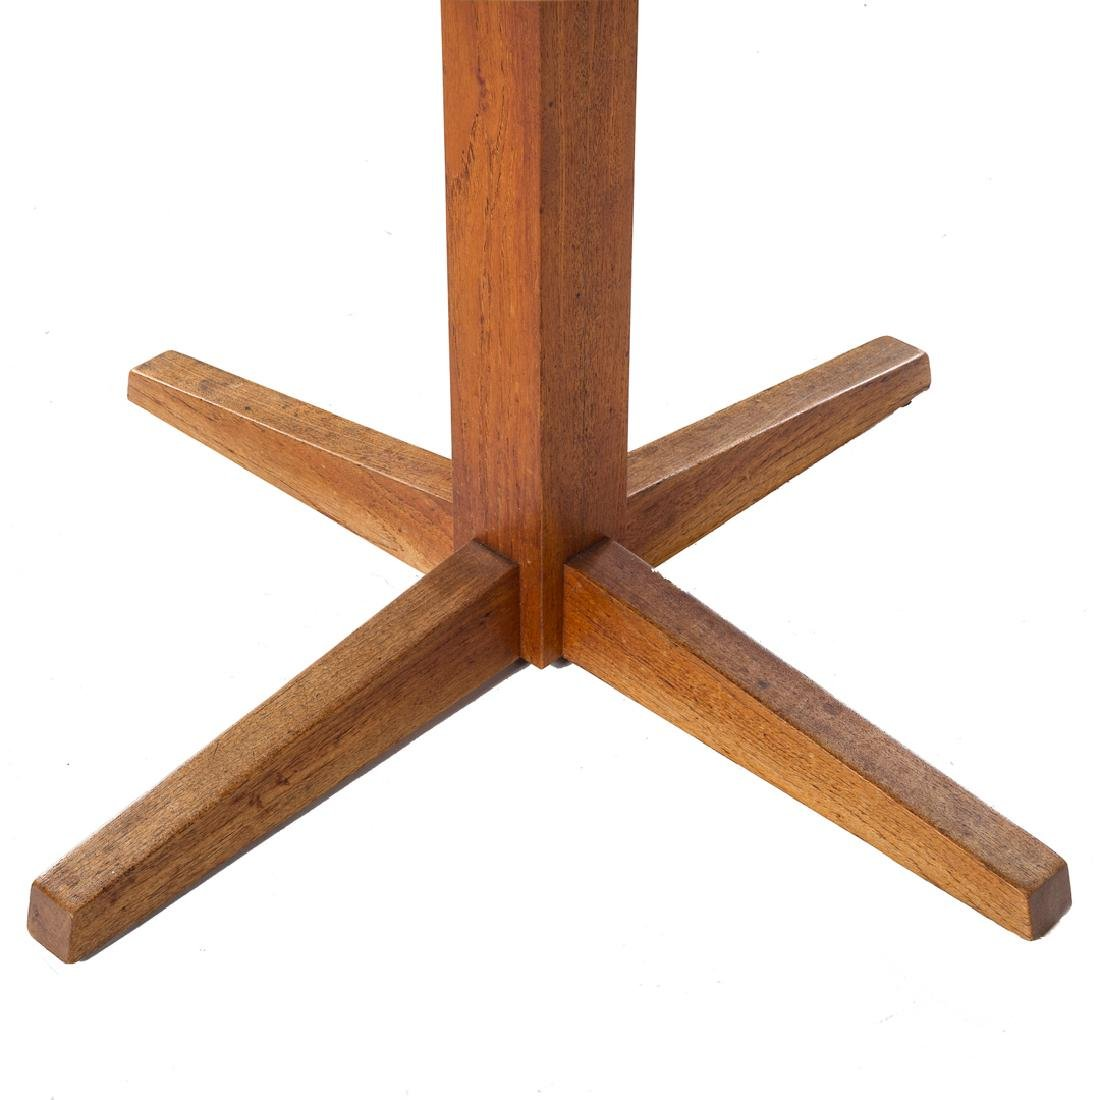 George Nakashima Round Pedestal Table - 5